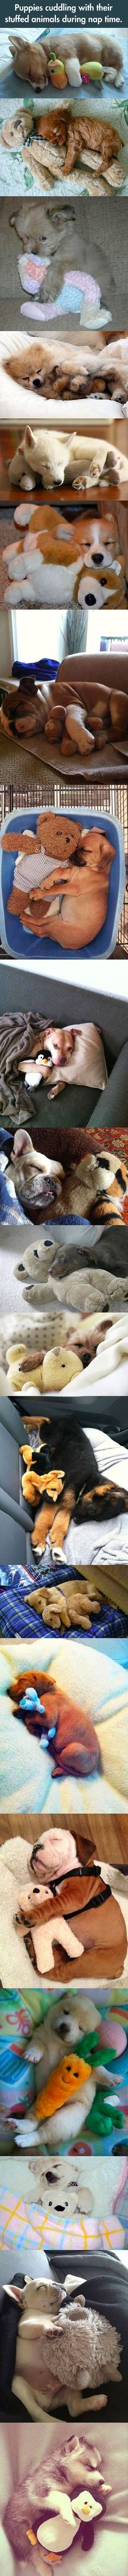 Why every puppy should have a stuffed toy to play and nap with.